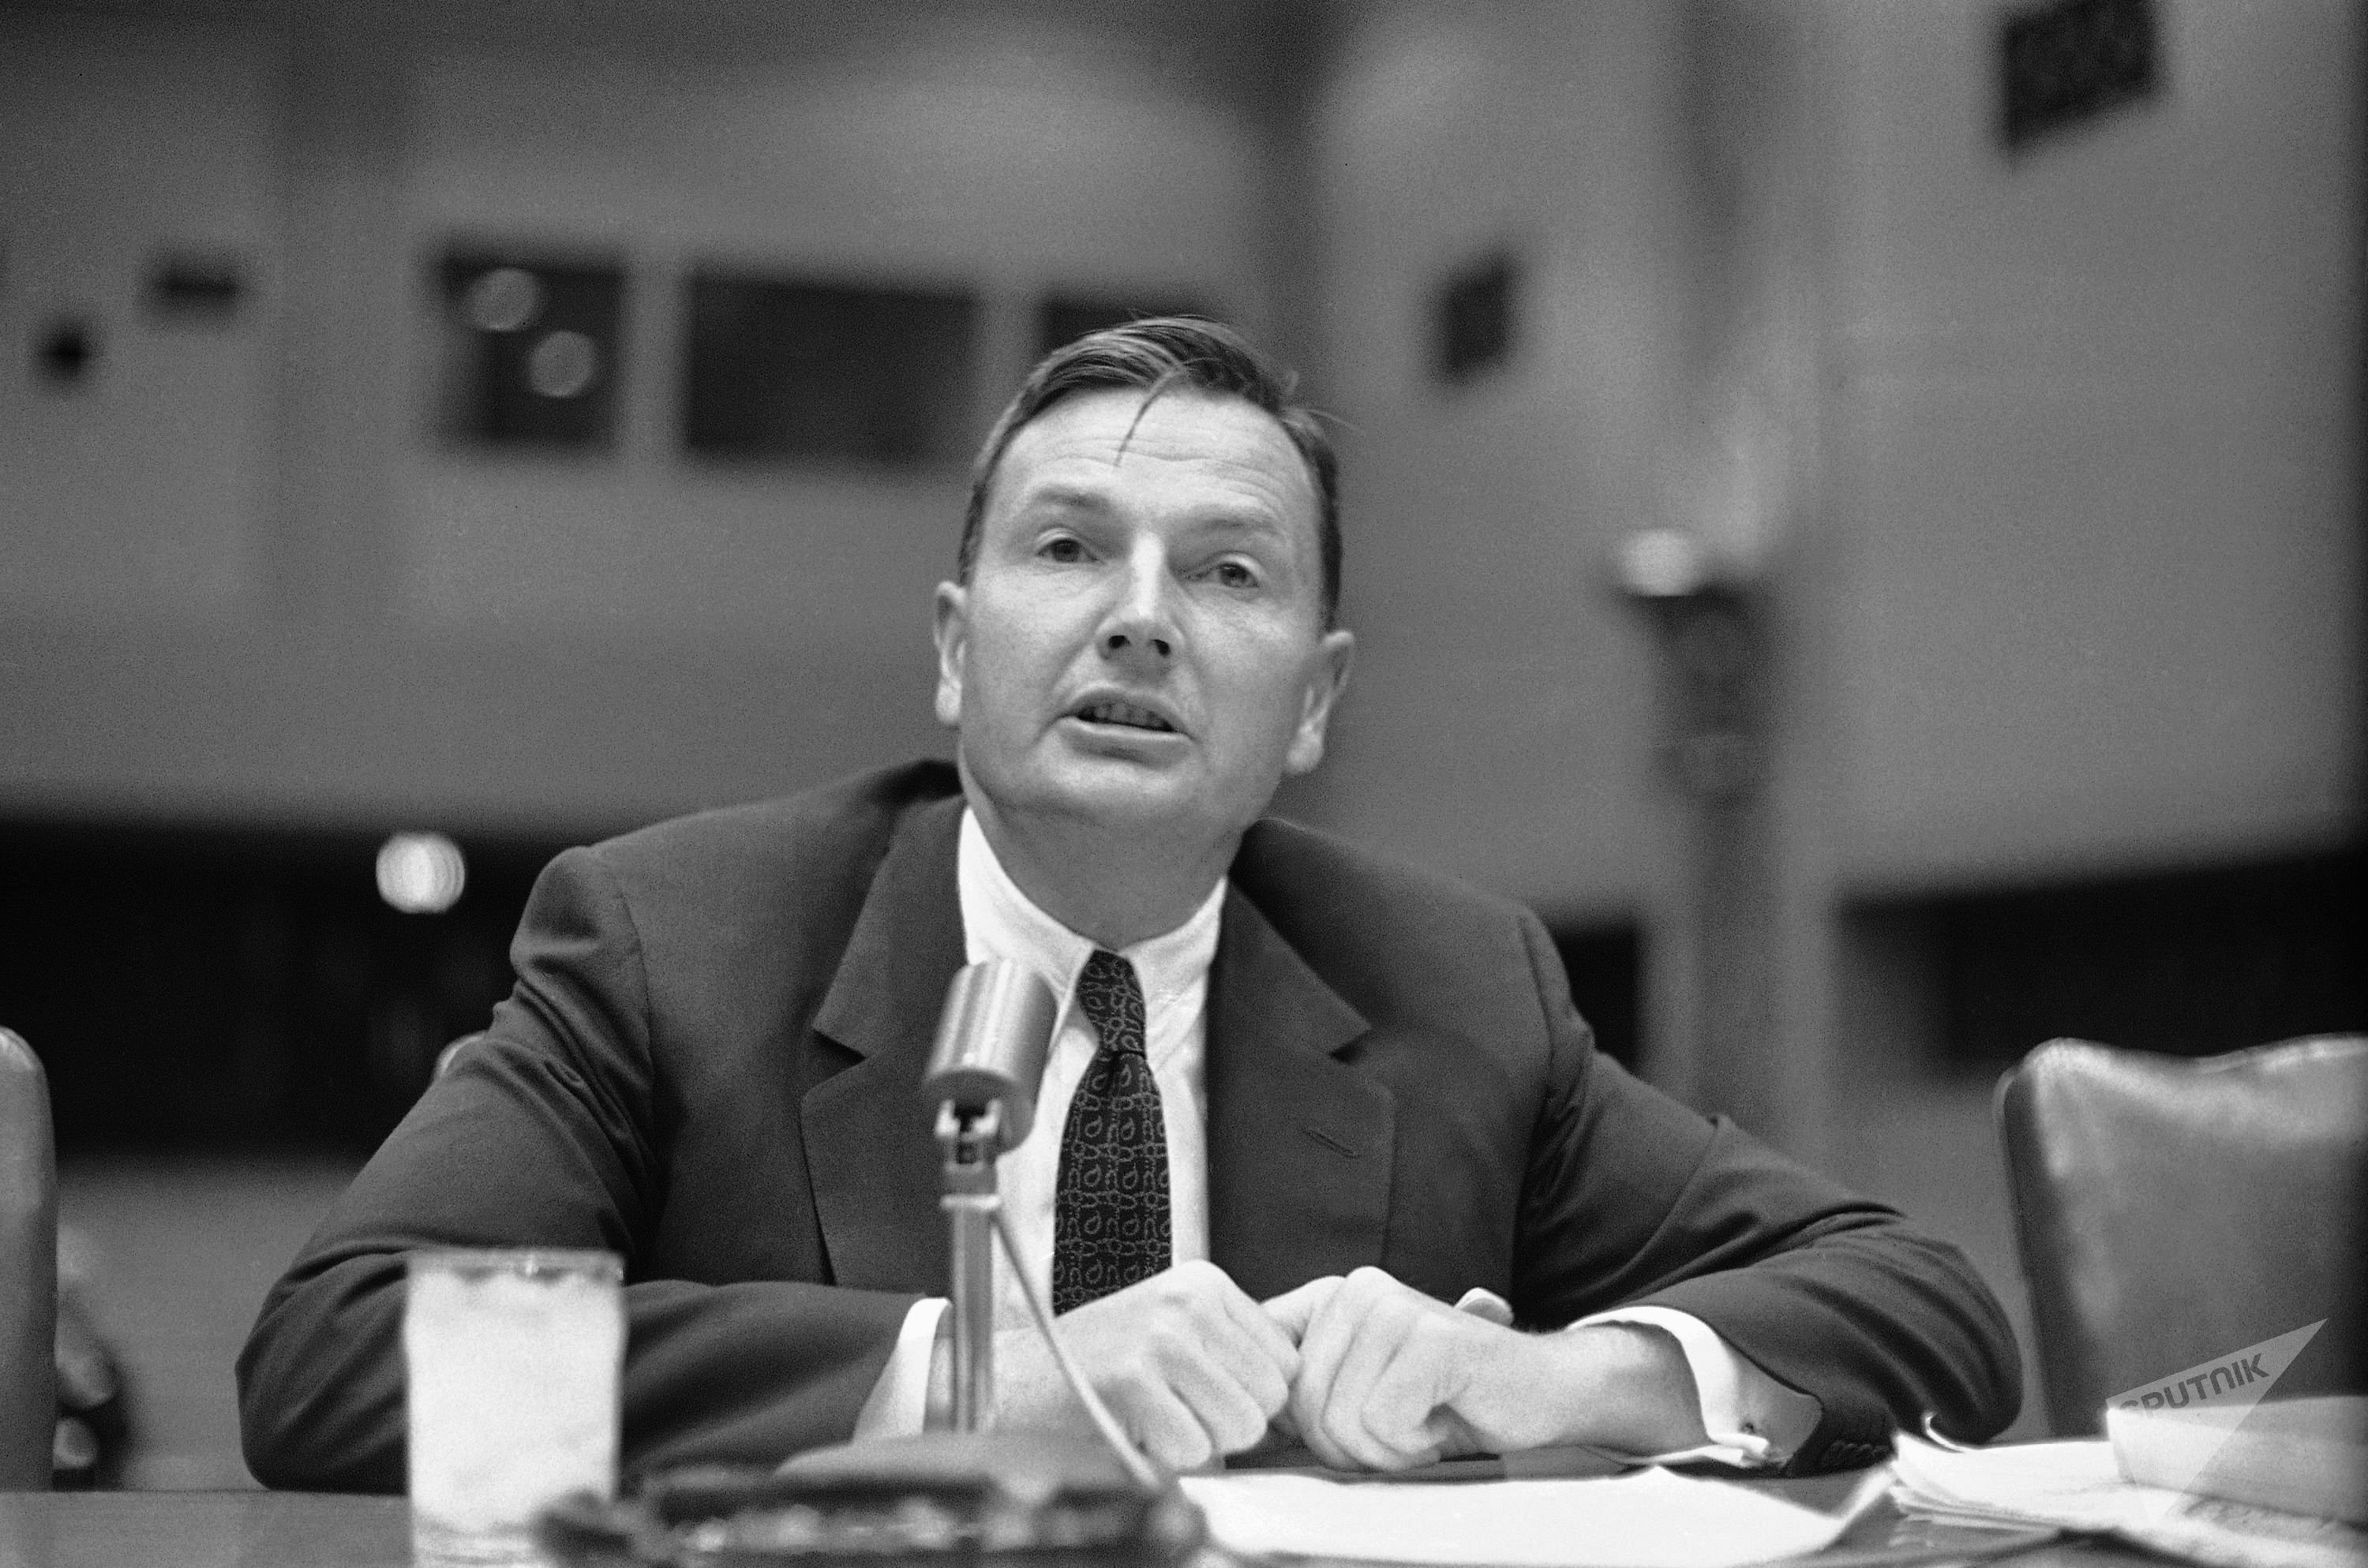 David Rockefeller durante un suo intervento a Washington, 1961.